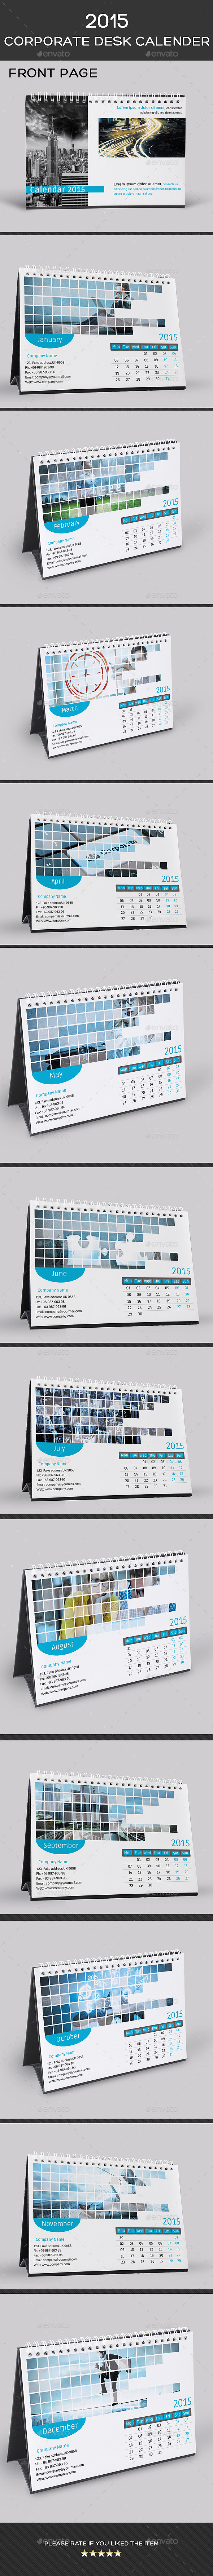 GraphicRiver 2015 Corporate Desk Calendar Template PSD 9456836